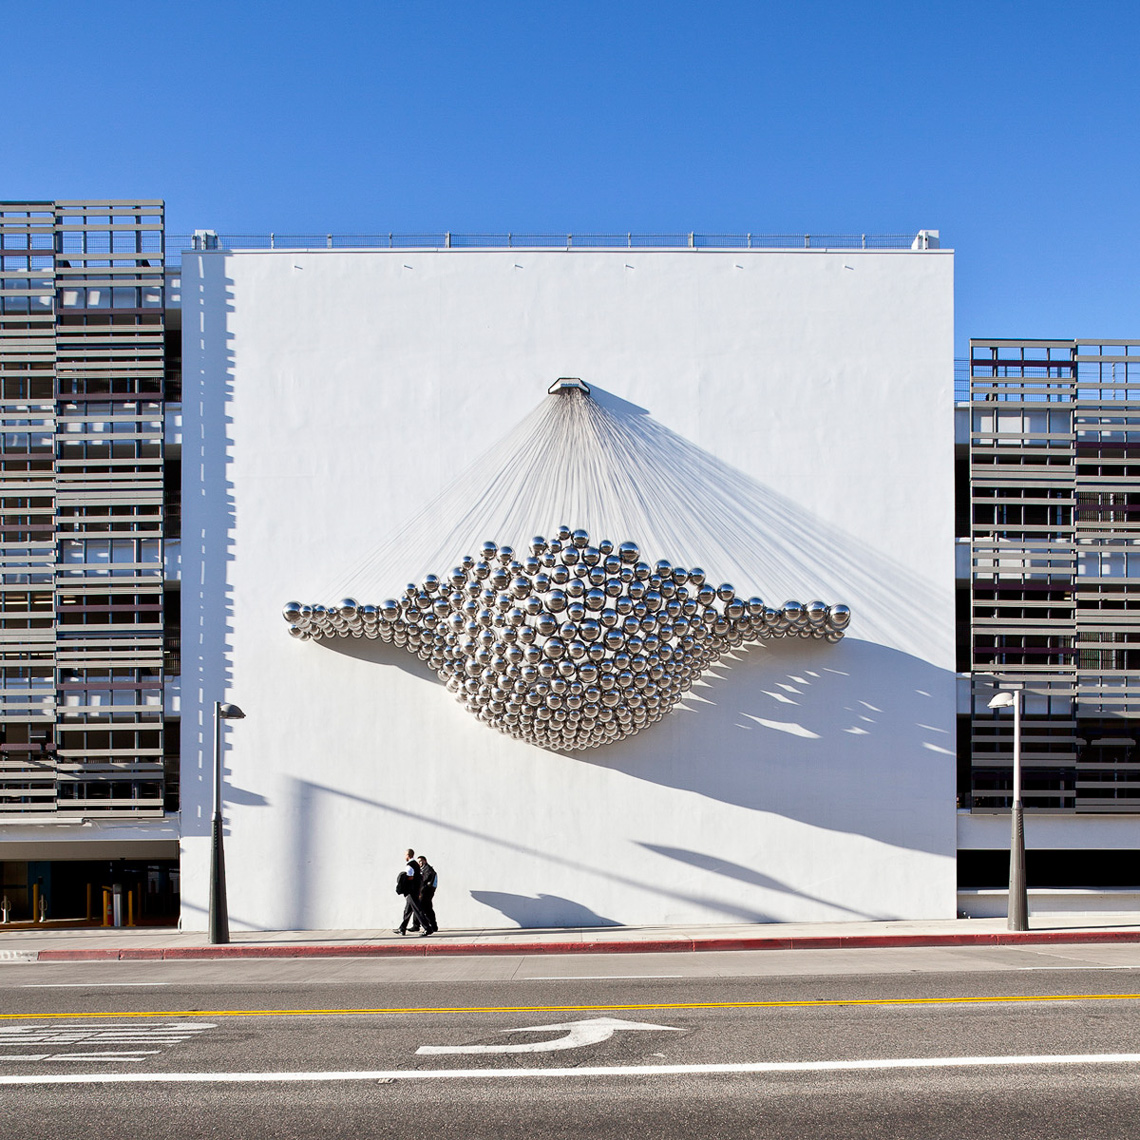 Benjamin_Ball_Public_Sculpture_Santa_Monica_web_4024